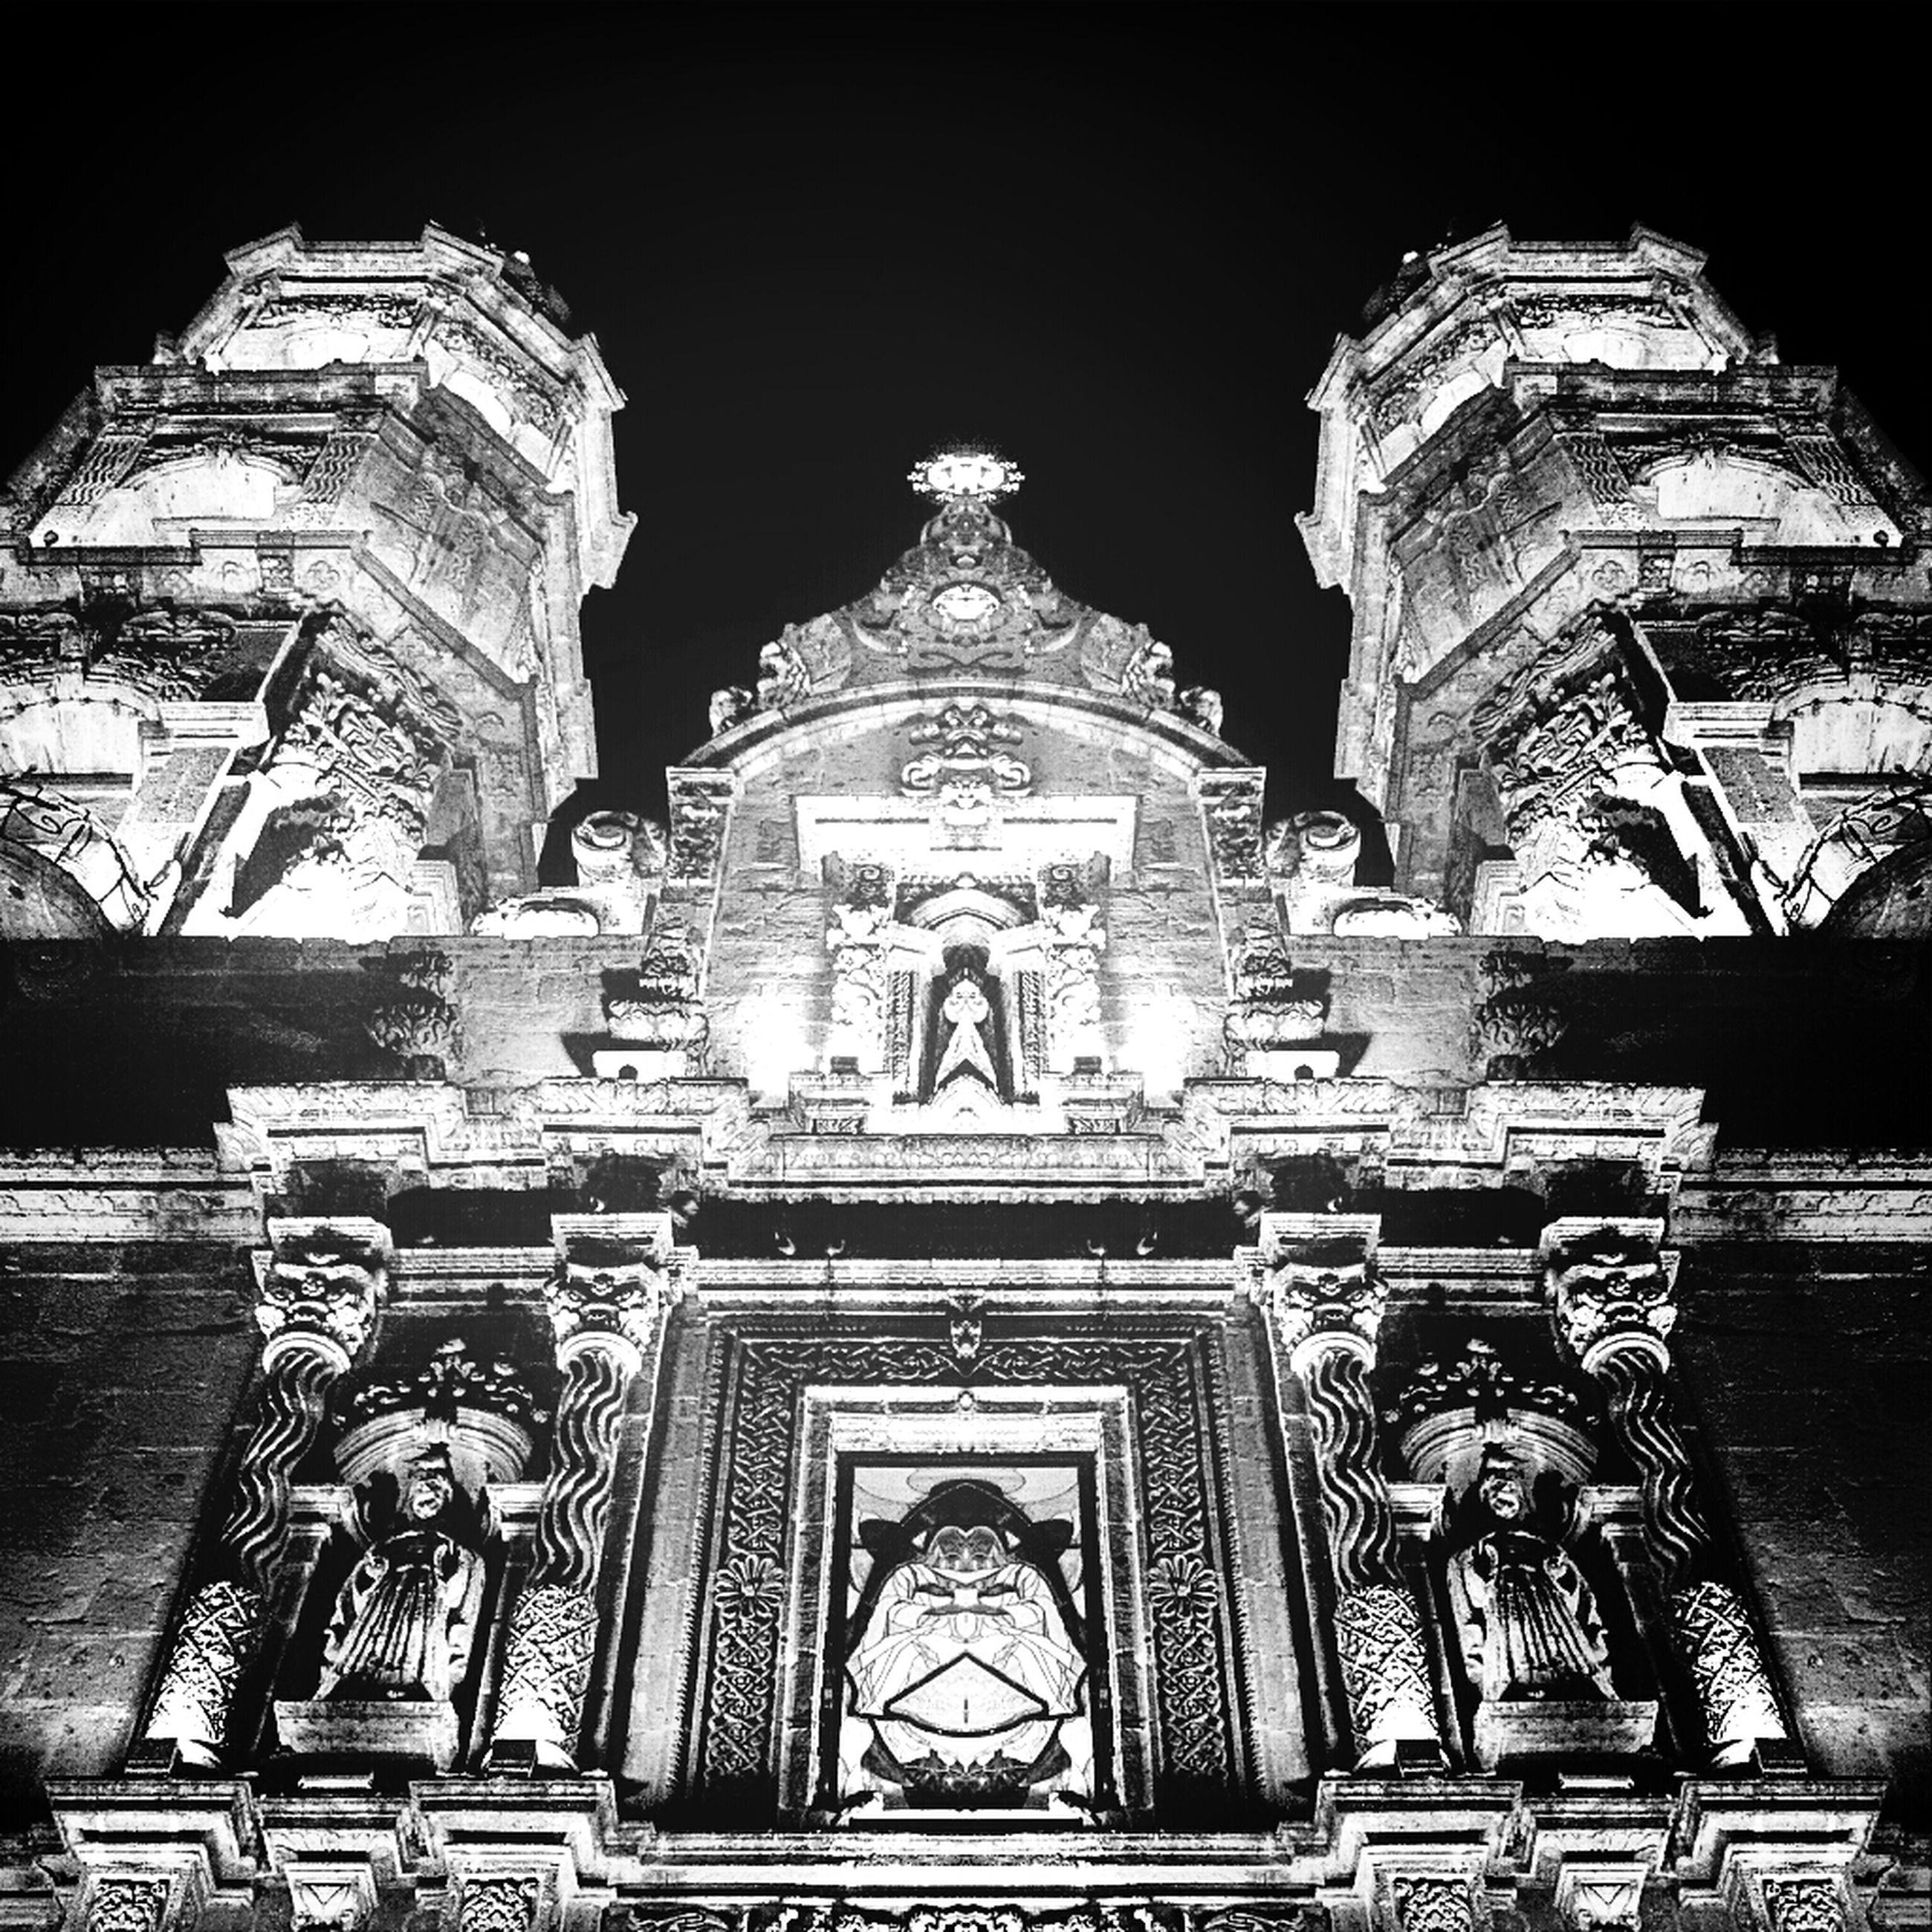 architecture, built structure, history, building exterior, famous place, low angle view, travel destinations, international landmark, tourism, travel, the past, old, religion, place of worship, carving - craft product, ancient, capital cities, art, art and craft, spirituality